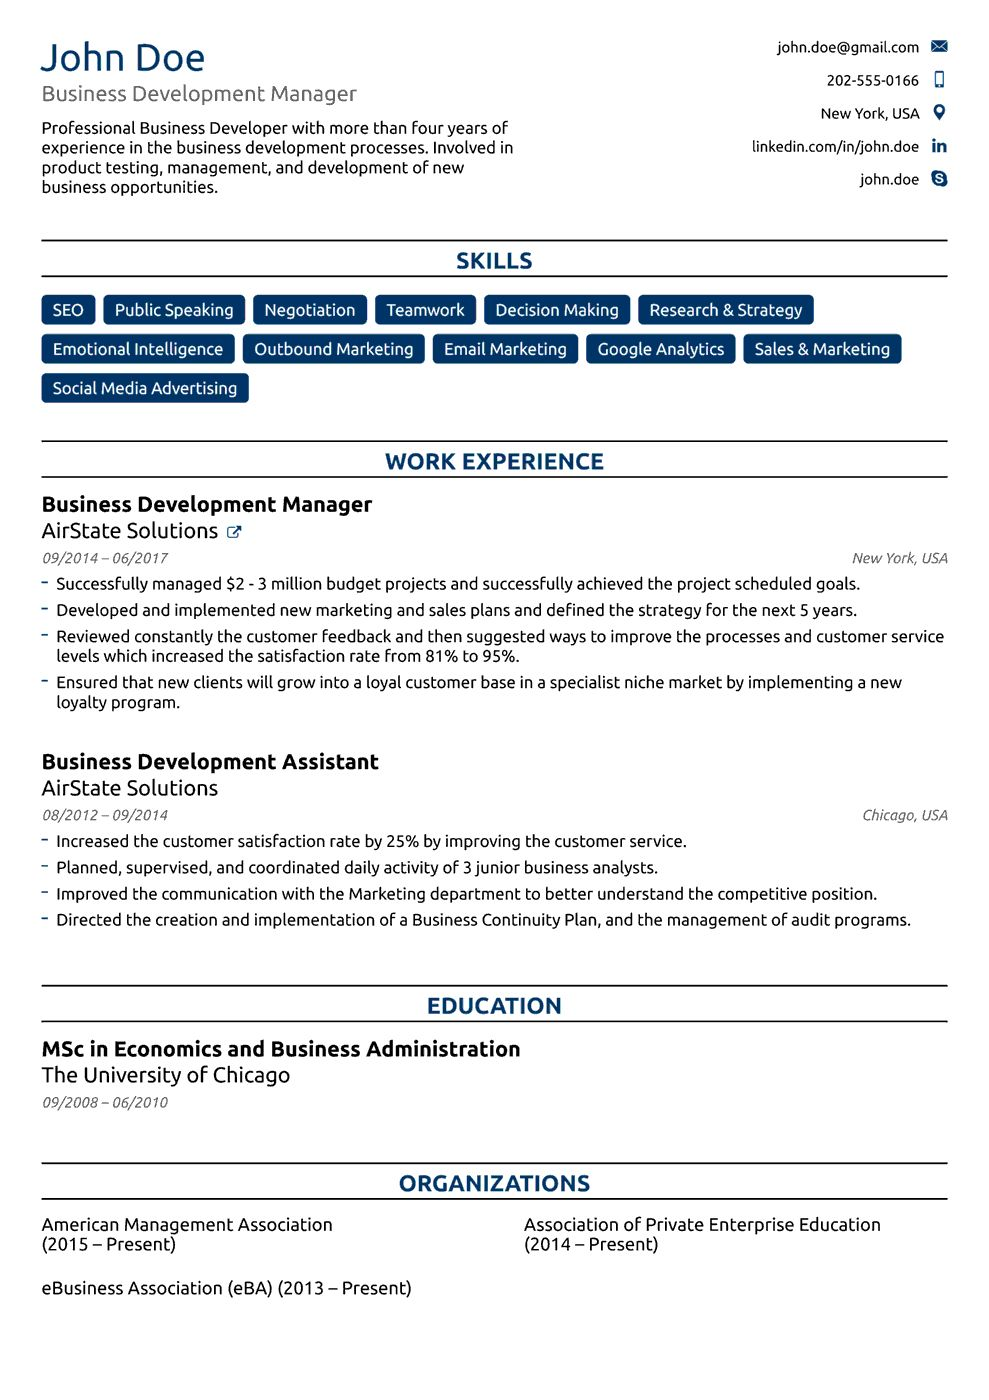 Free Resume Templates For 2020 Download Now For Combination Resume Template Word College Resume Template Resume Template Free Resume Template Professional